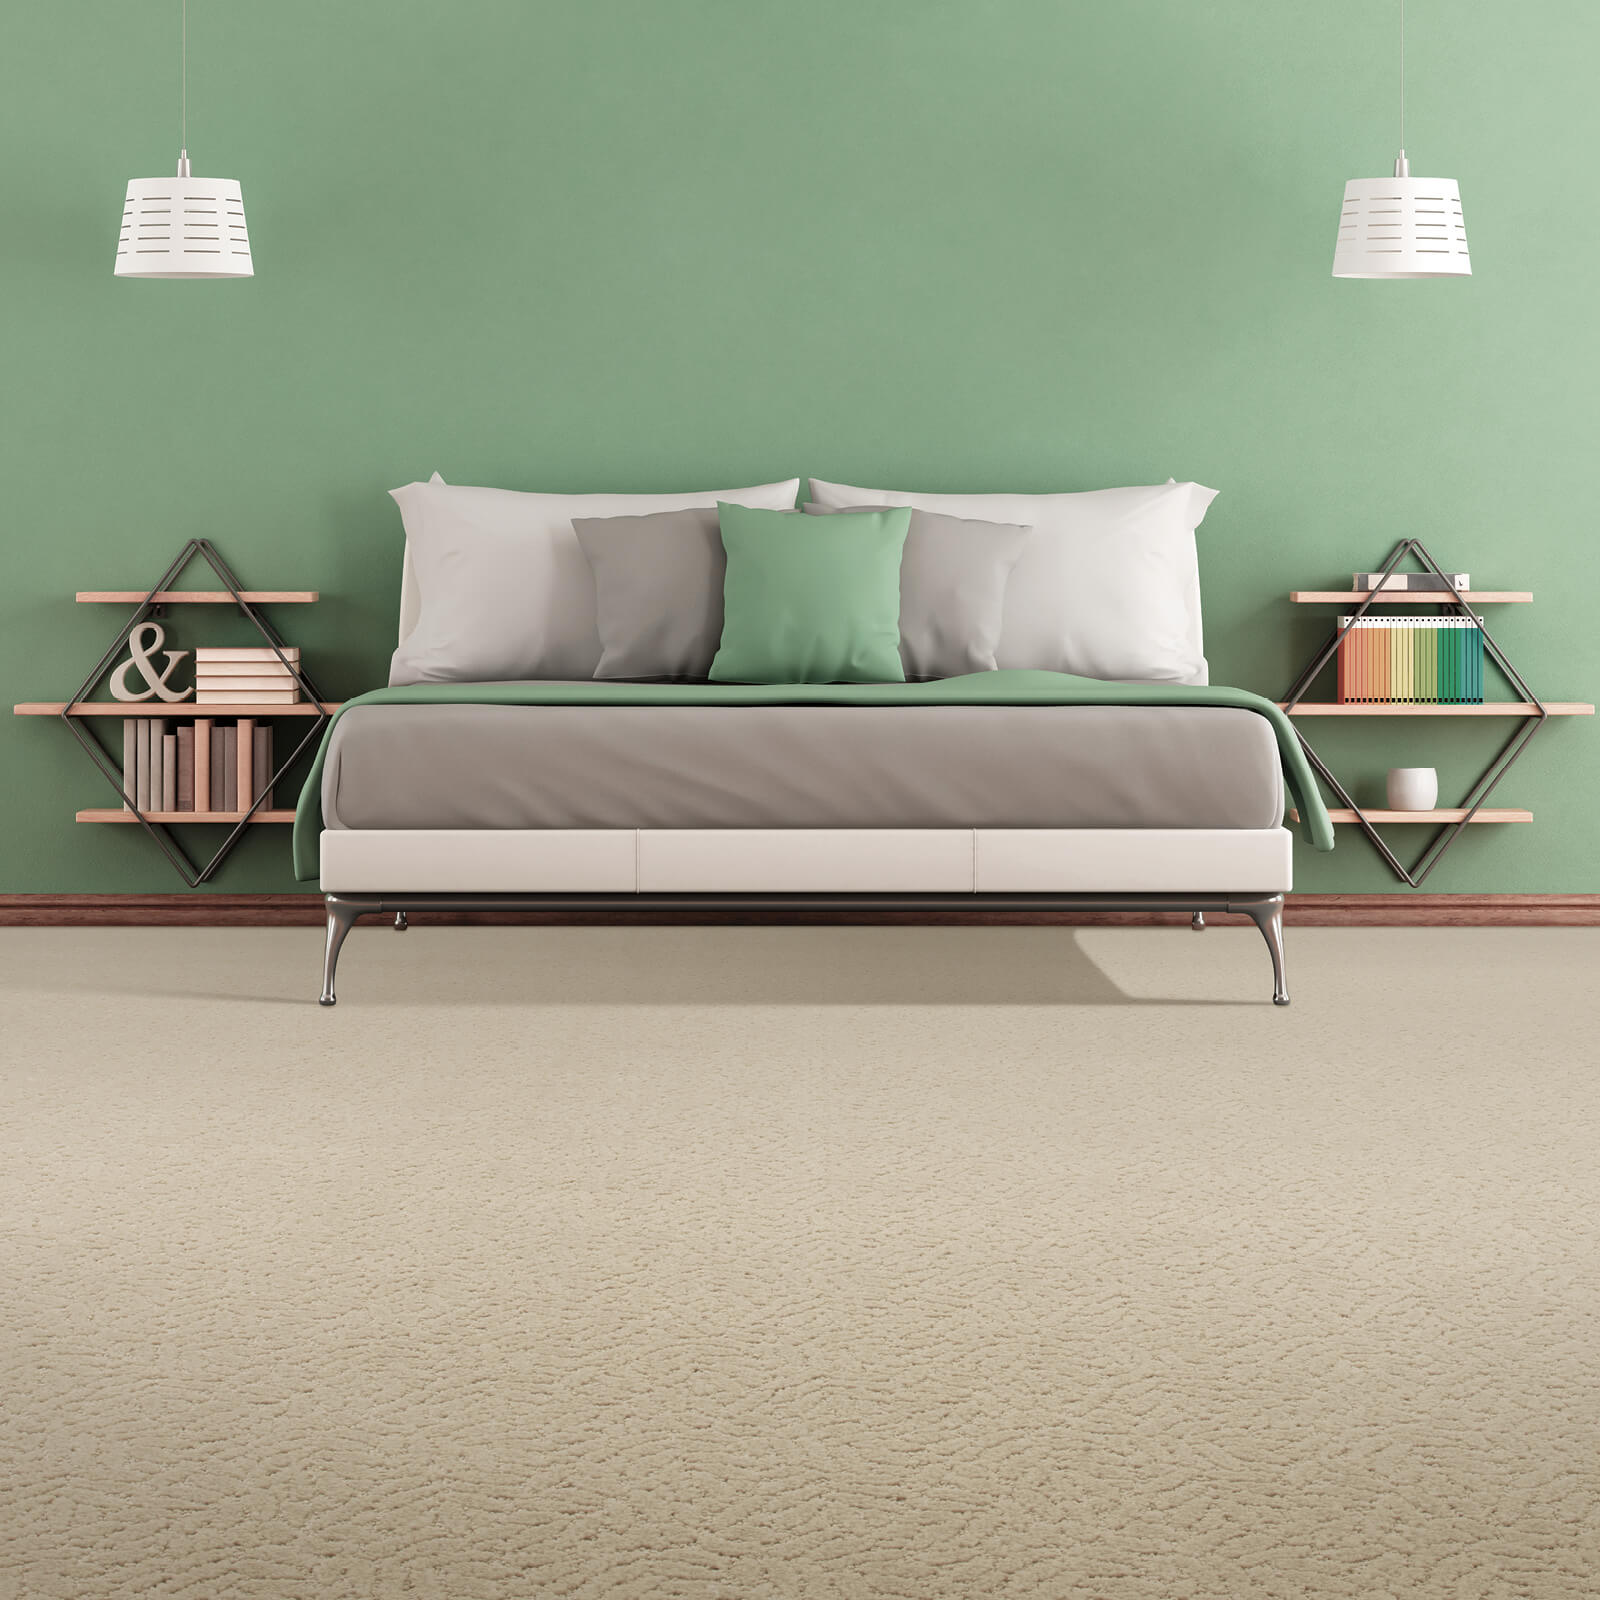 Green colorwall | Dolphin Carpet & Tile